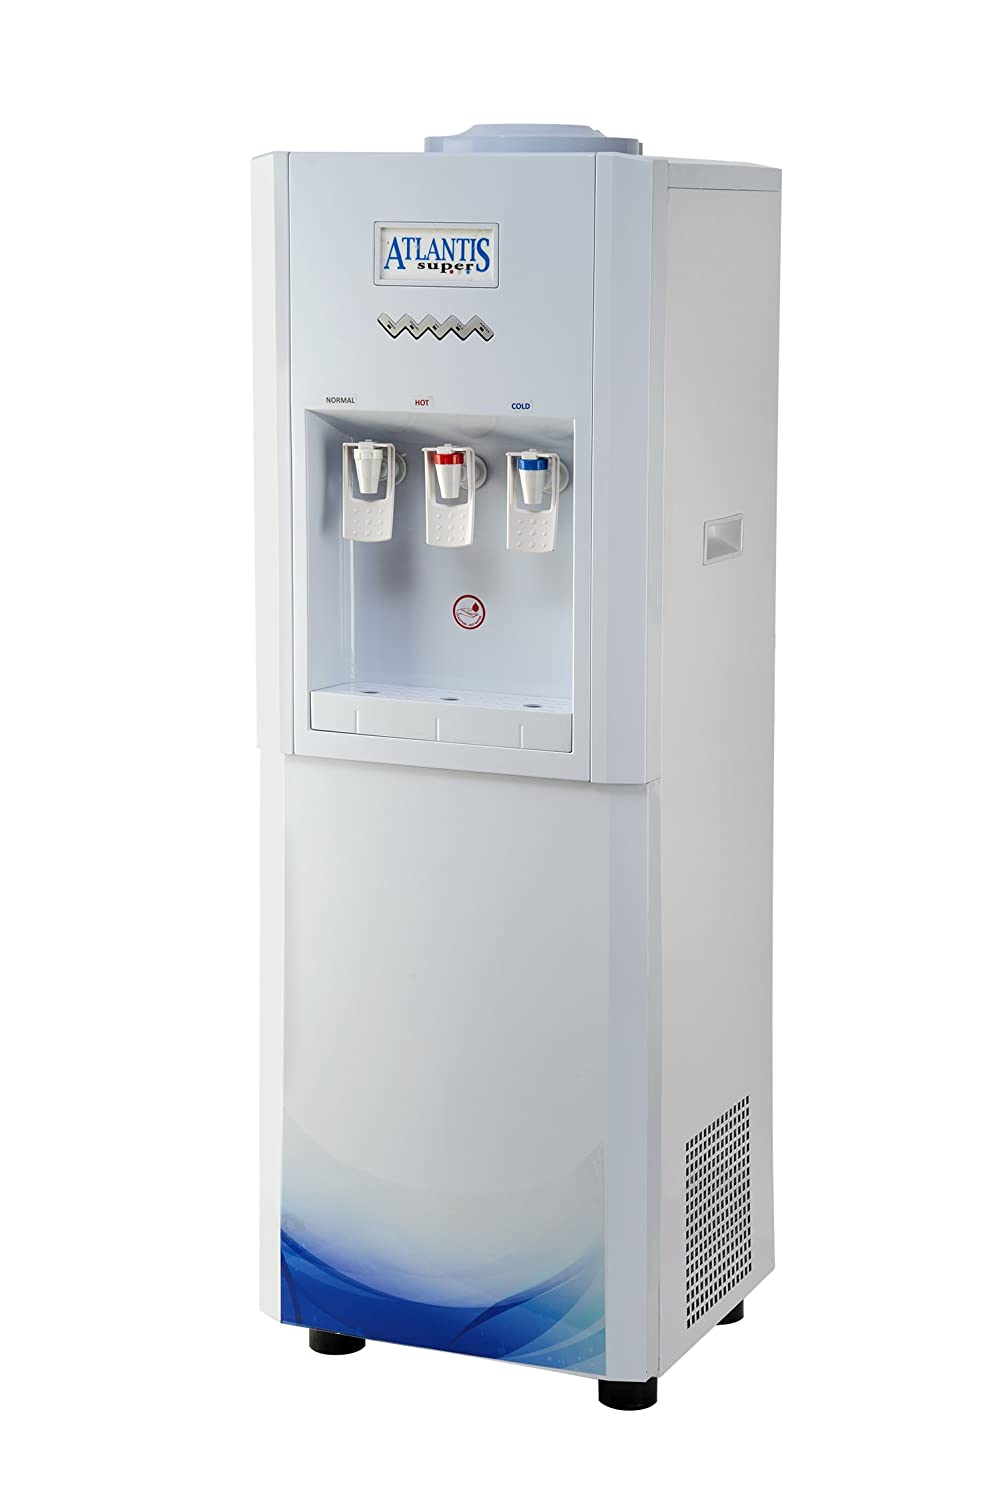 Atlantis Super Hot Cold And Normal Water Dispenser Floor Standing 15 Liters Storage Capacity Cools 10 Liters Per Hour 3 Tap Amazon In Home Kitchen